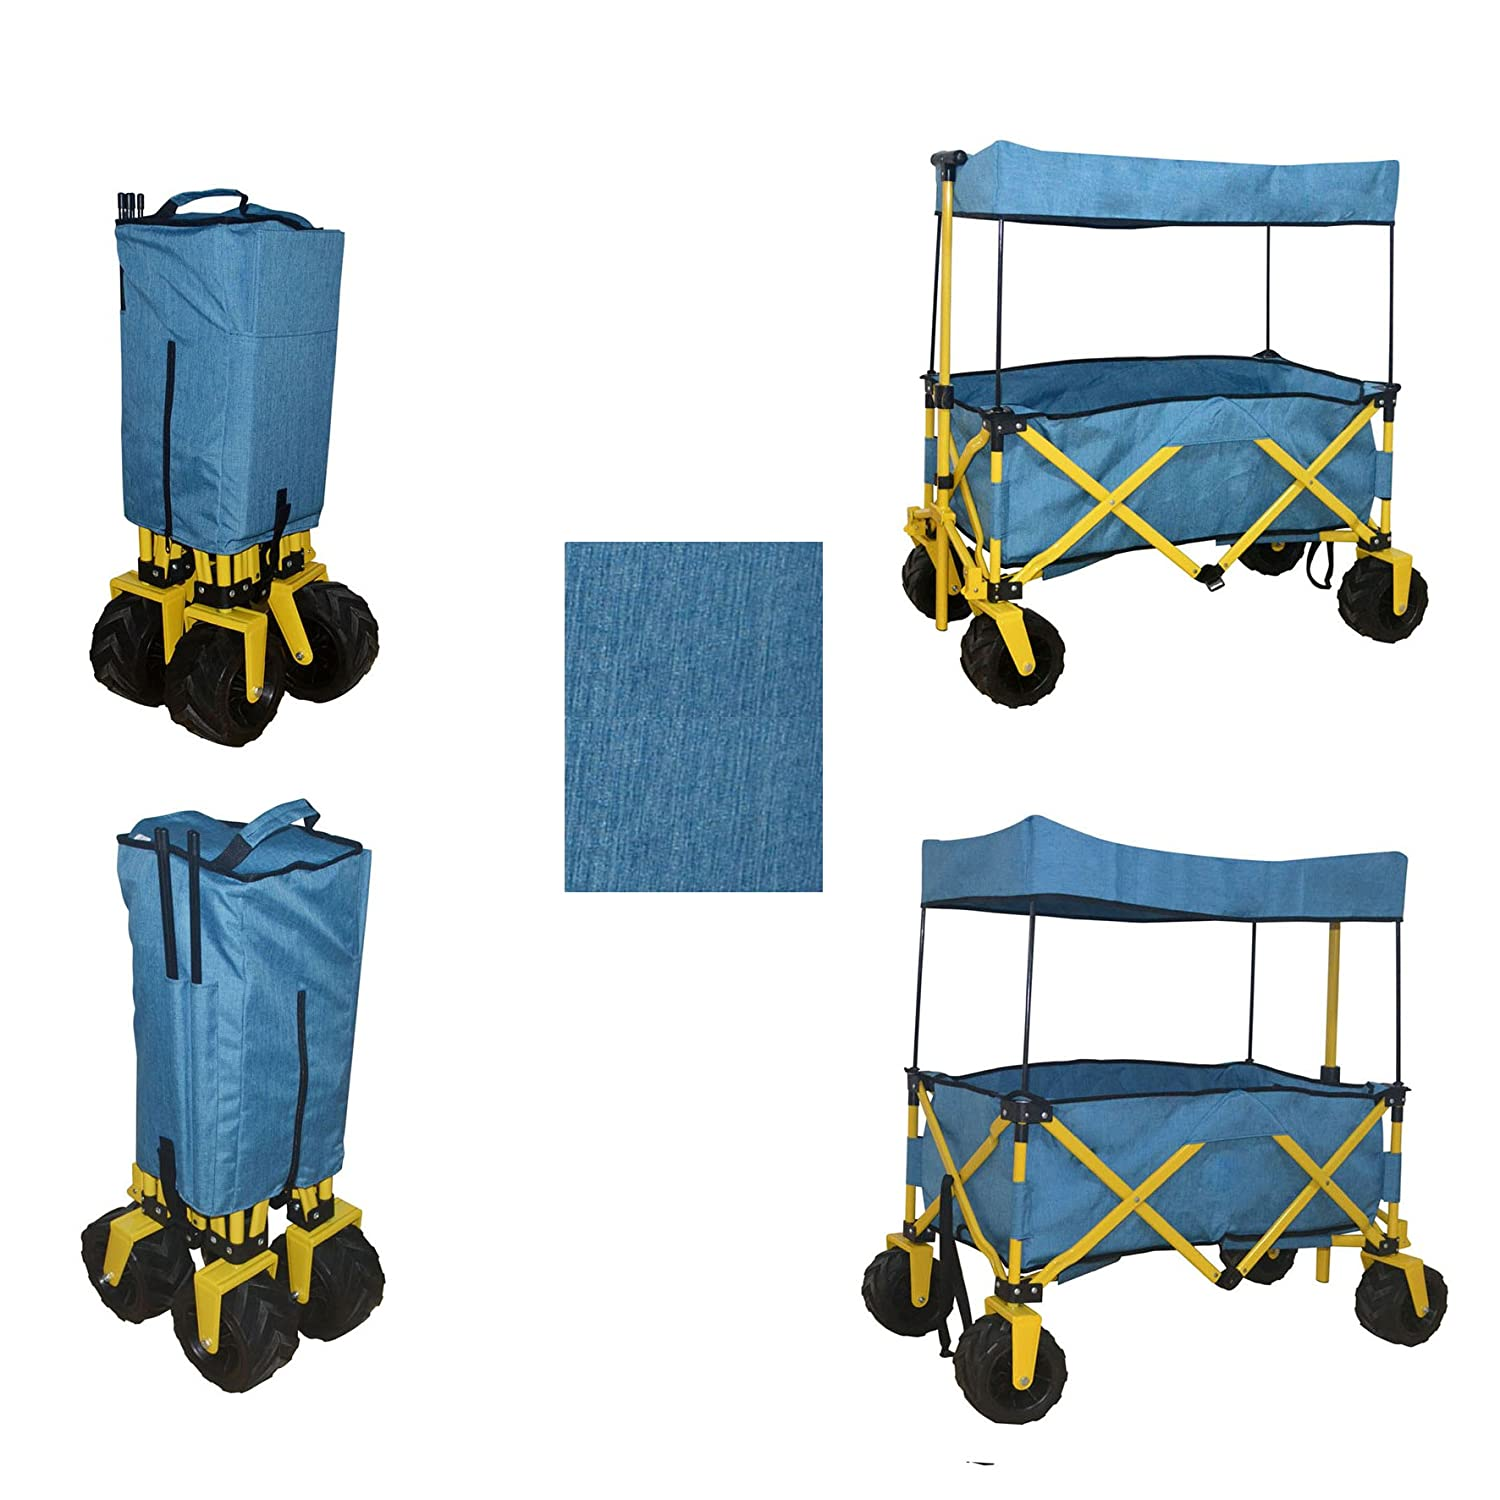 BLUE JUMBO WHEEL FOLDING WAGON ALL PURPOSE GARDEN UTILITY BEACH SHOPPING TRAVEL CART OUTDOOR SPORT COLLAPSIBLE WITH CANOPY COVER - EASY SETUP NO TOOL NECESSARY - COMPACT FOLDED SIZE SPACE SAVING WagonBuddy